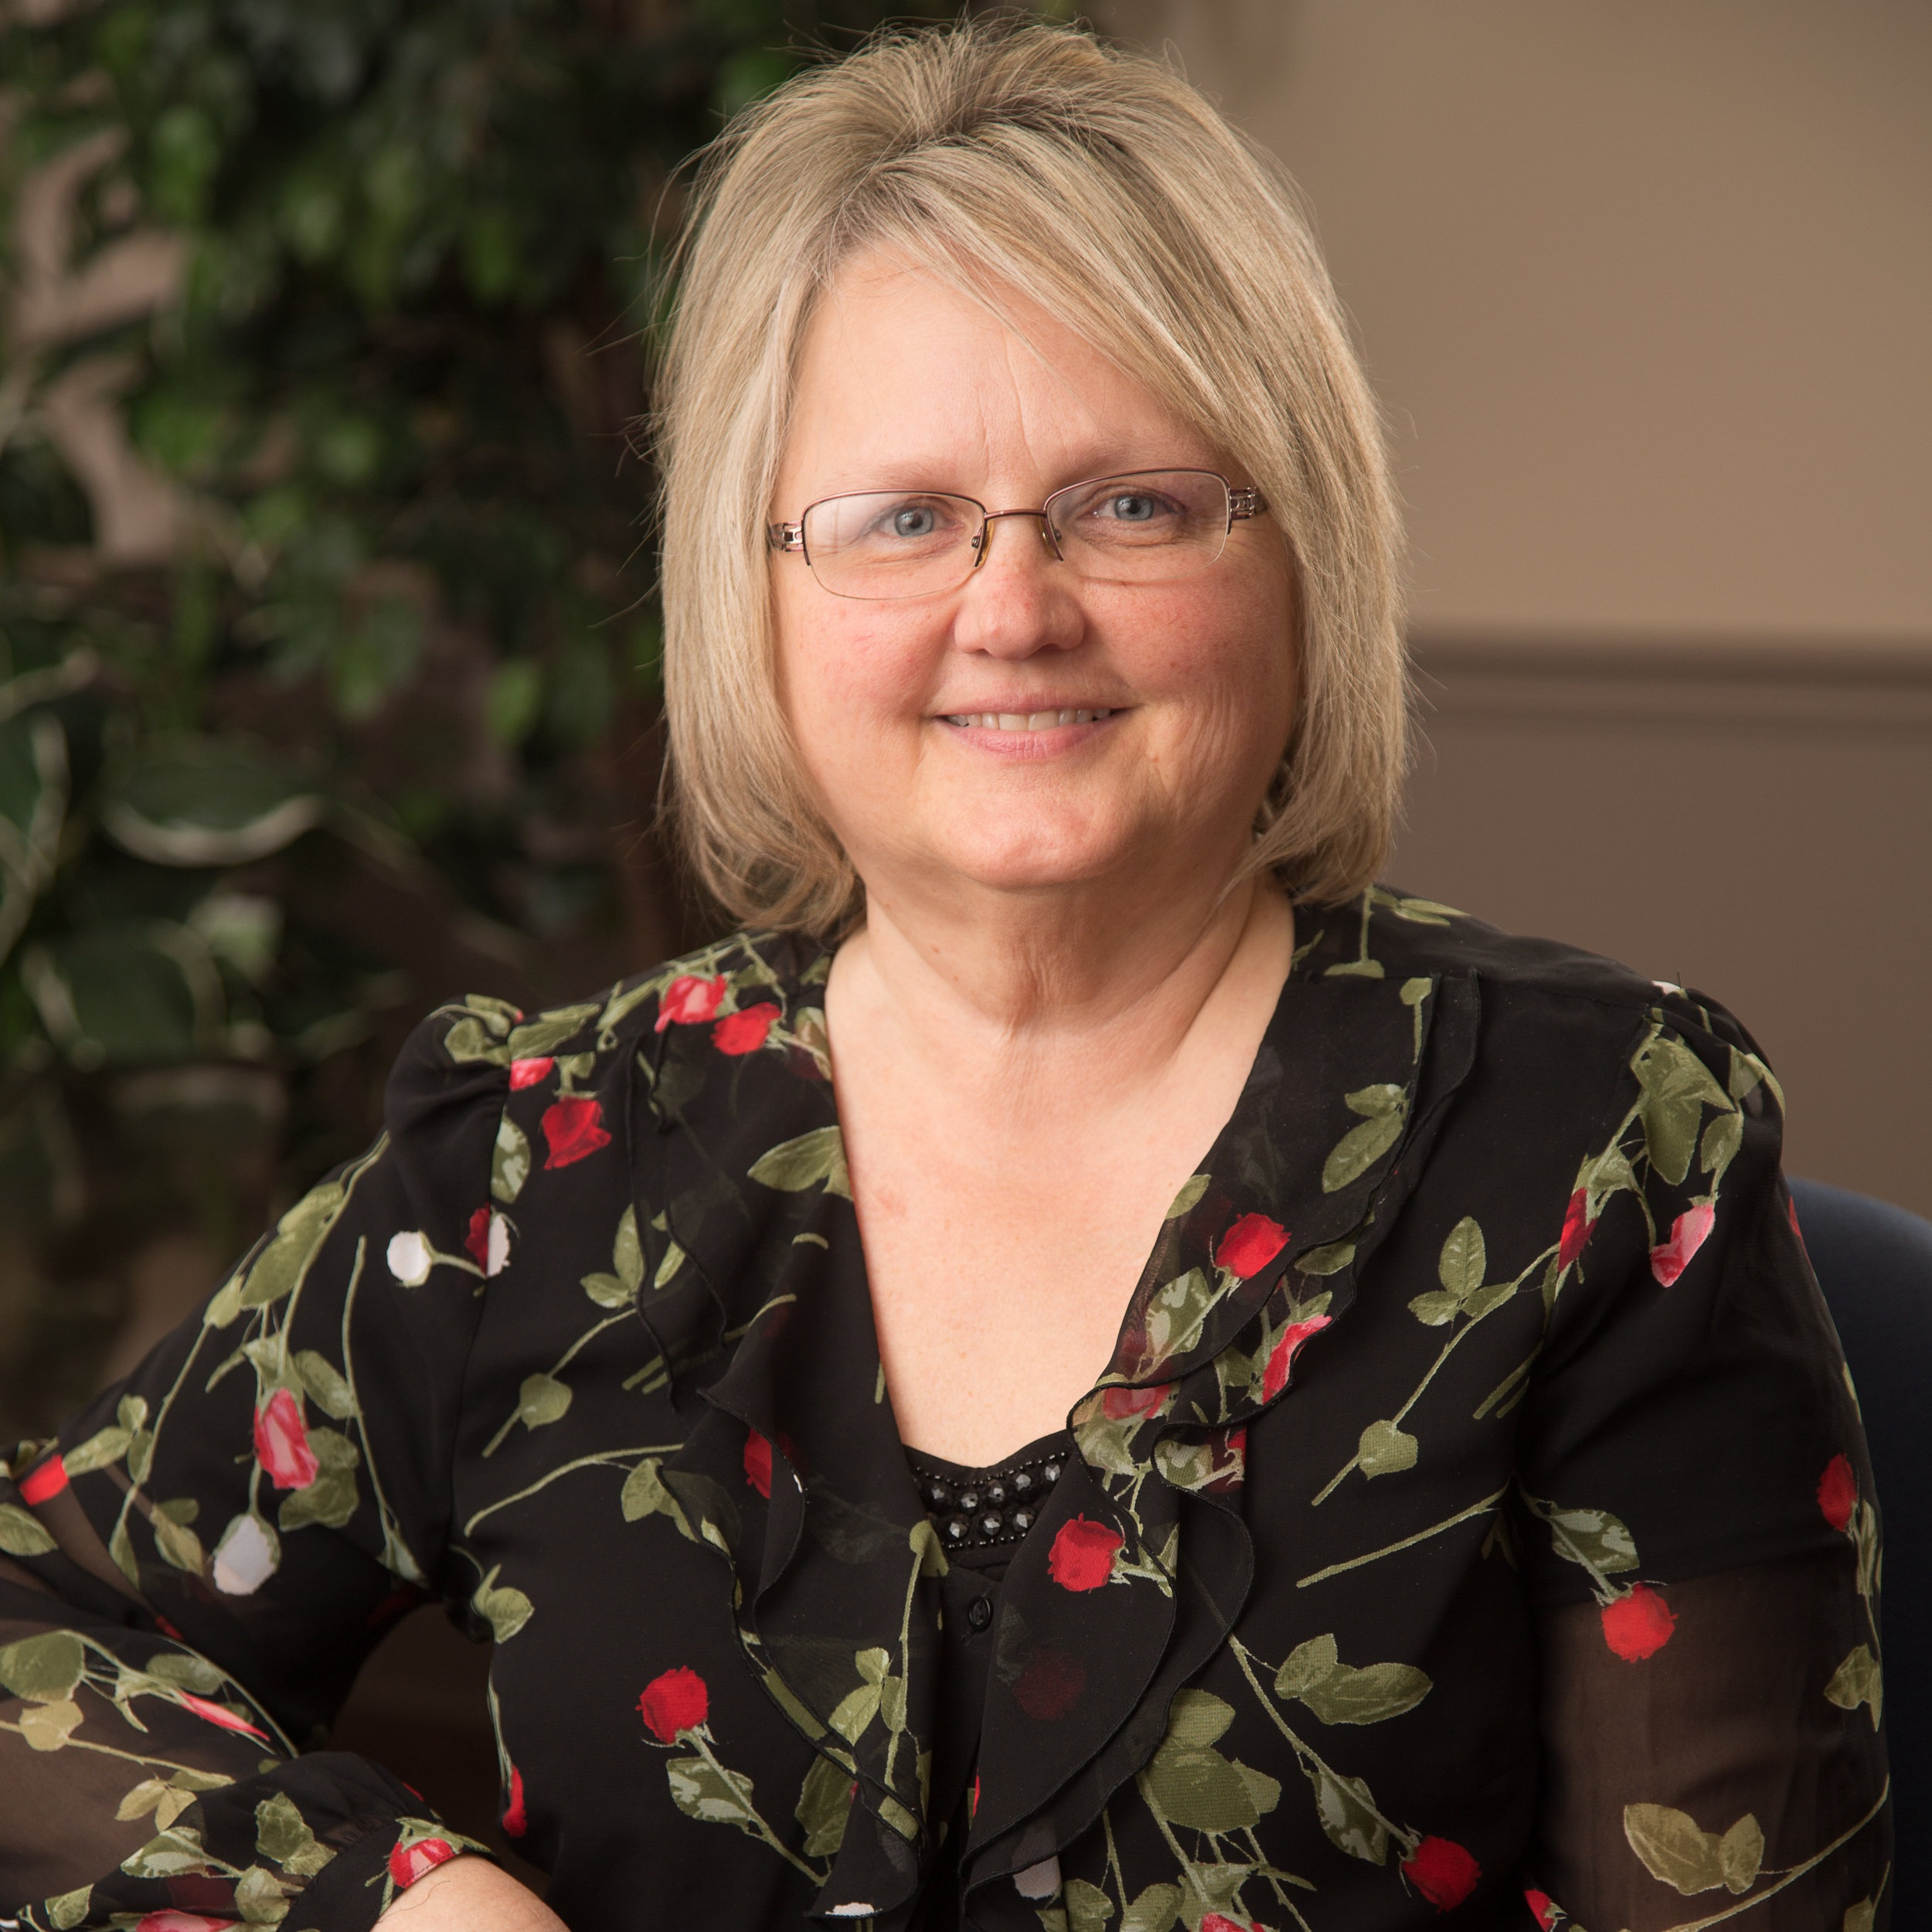 Darlene Hambel - Darlene is an Assessor for Buckeye Hills Regional Council and has been a part of our team since July 2003.